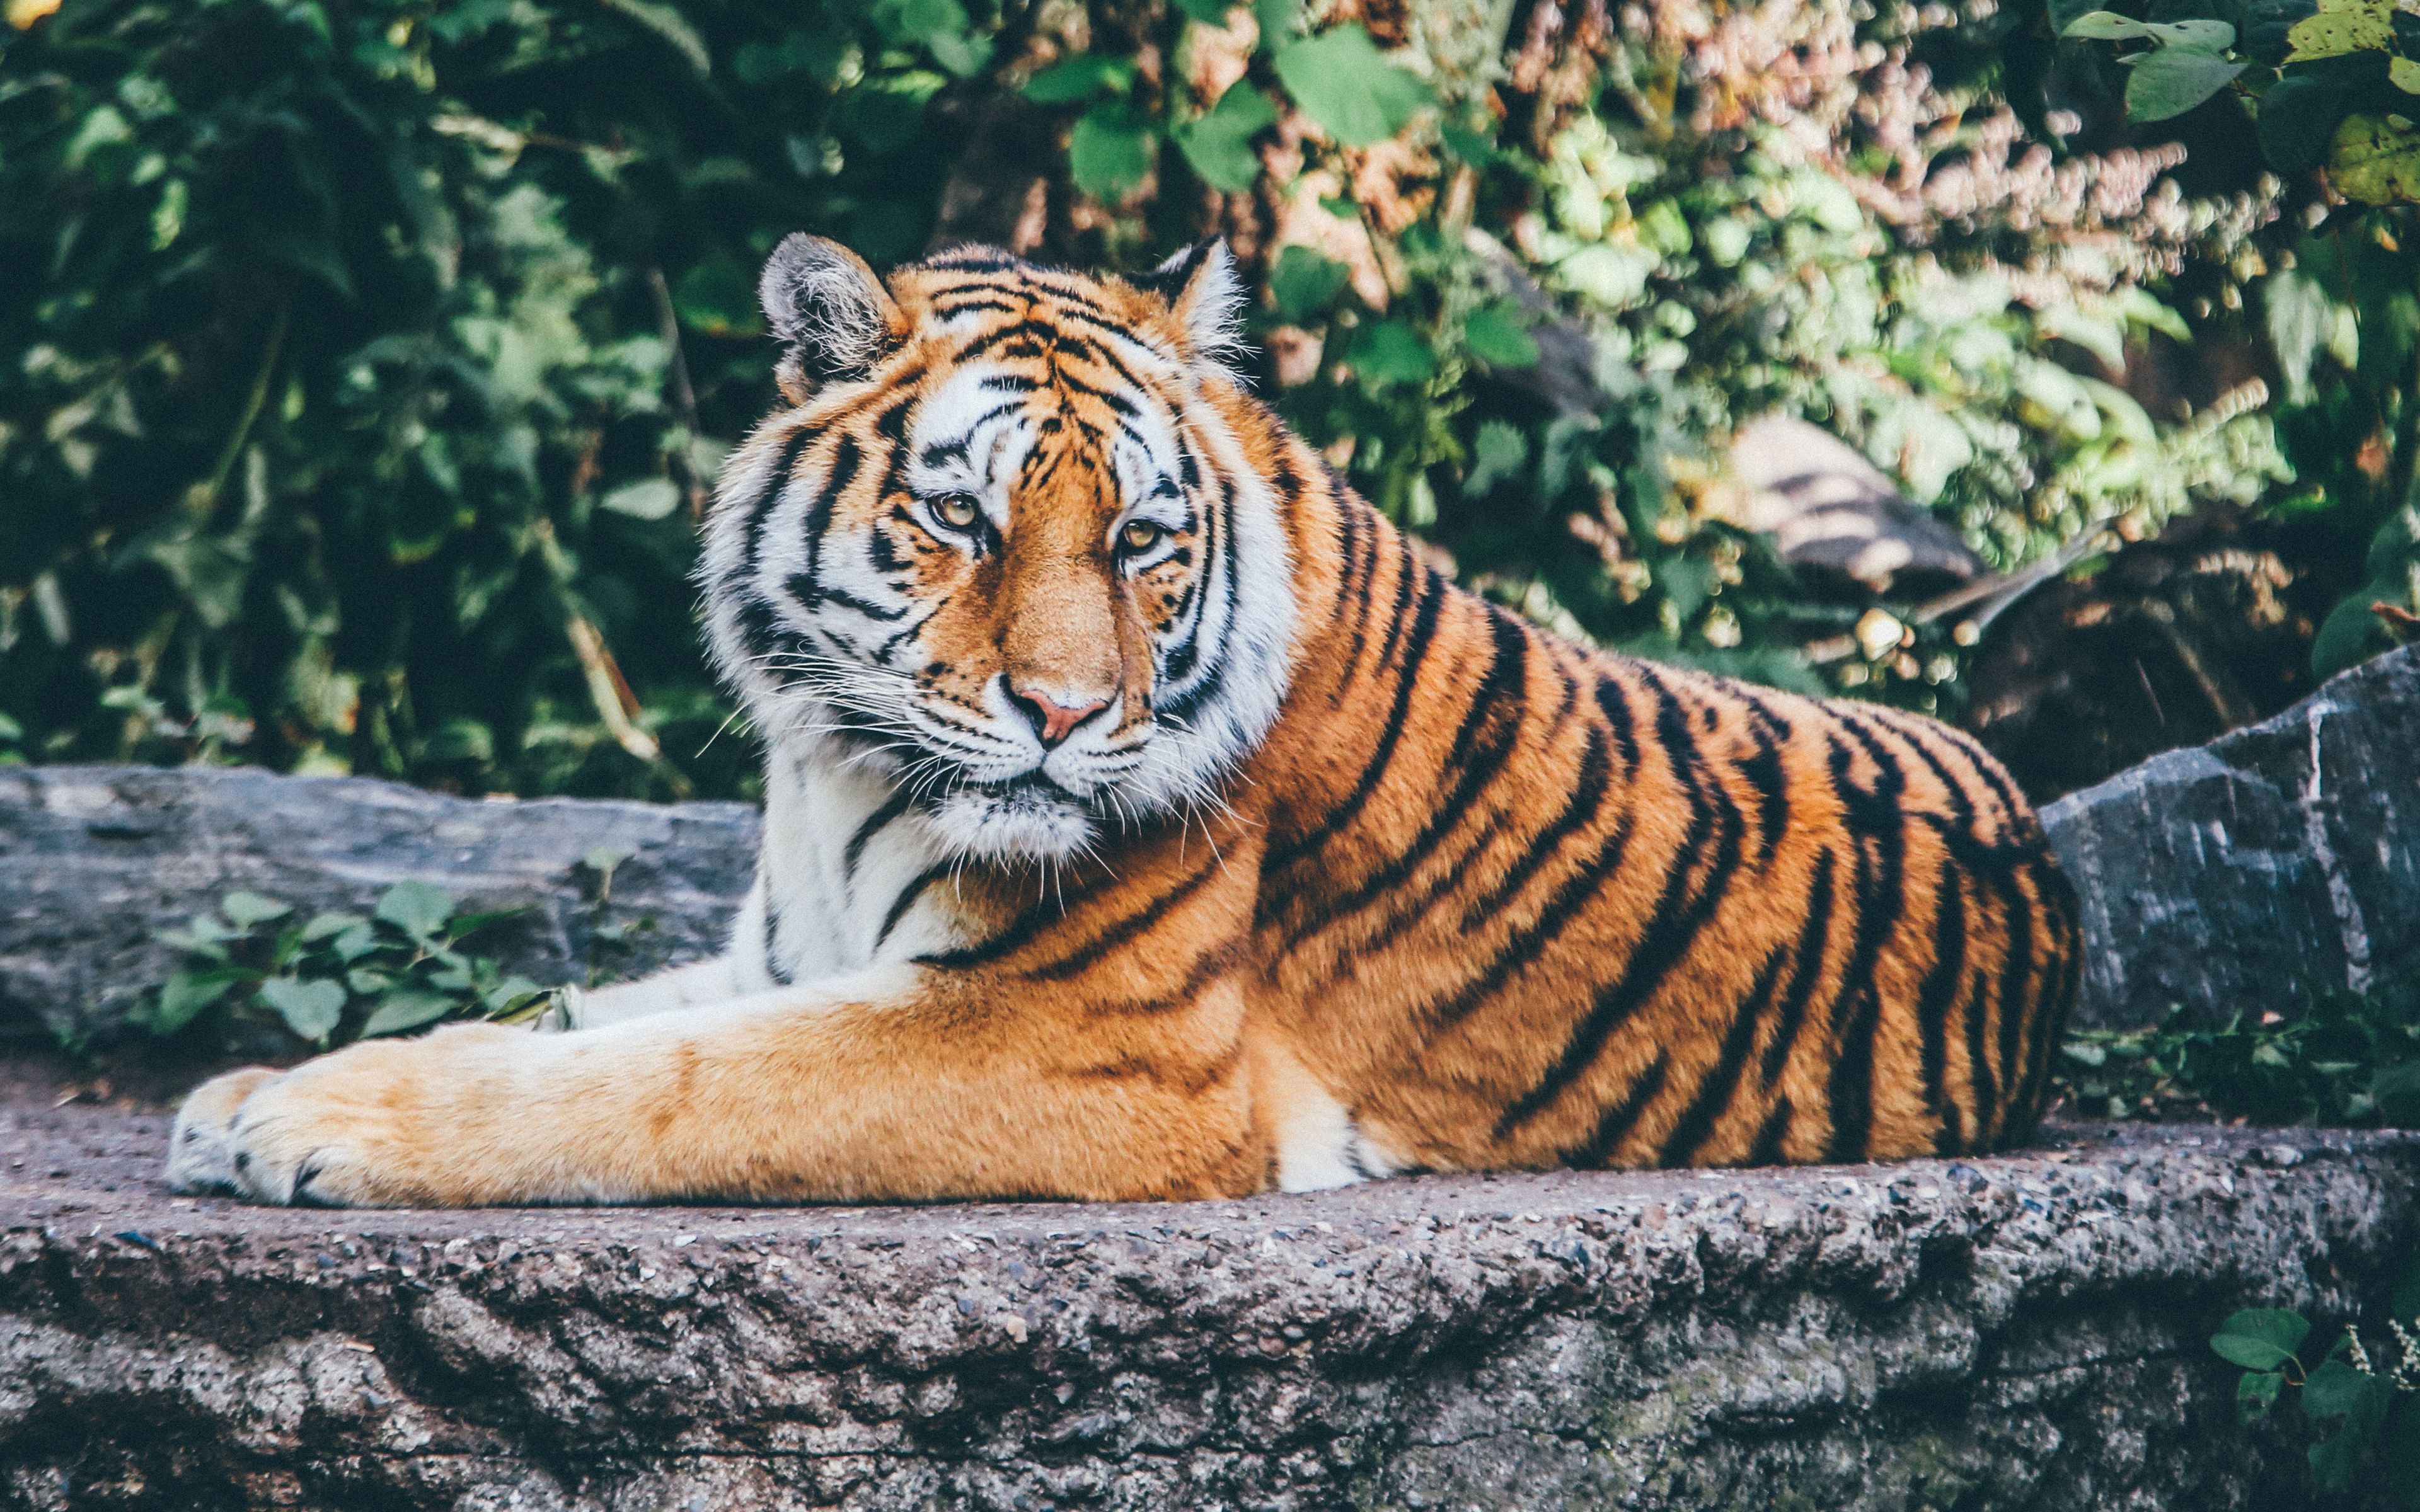 Zoo Tiger 4K Wallpapers